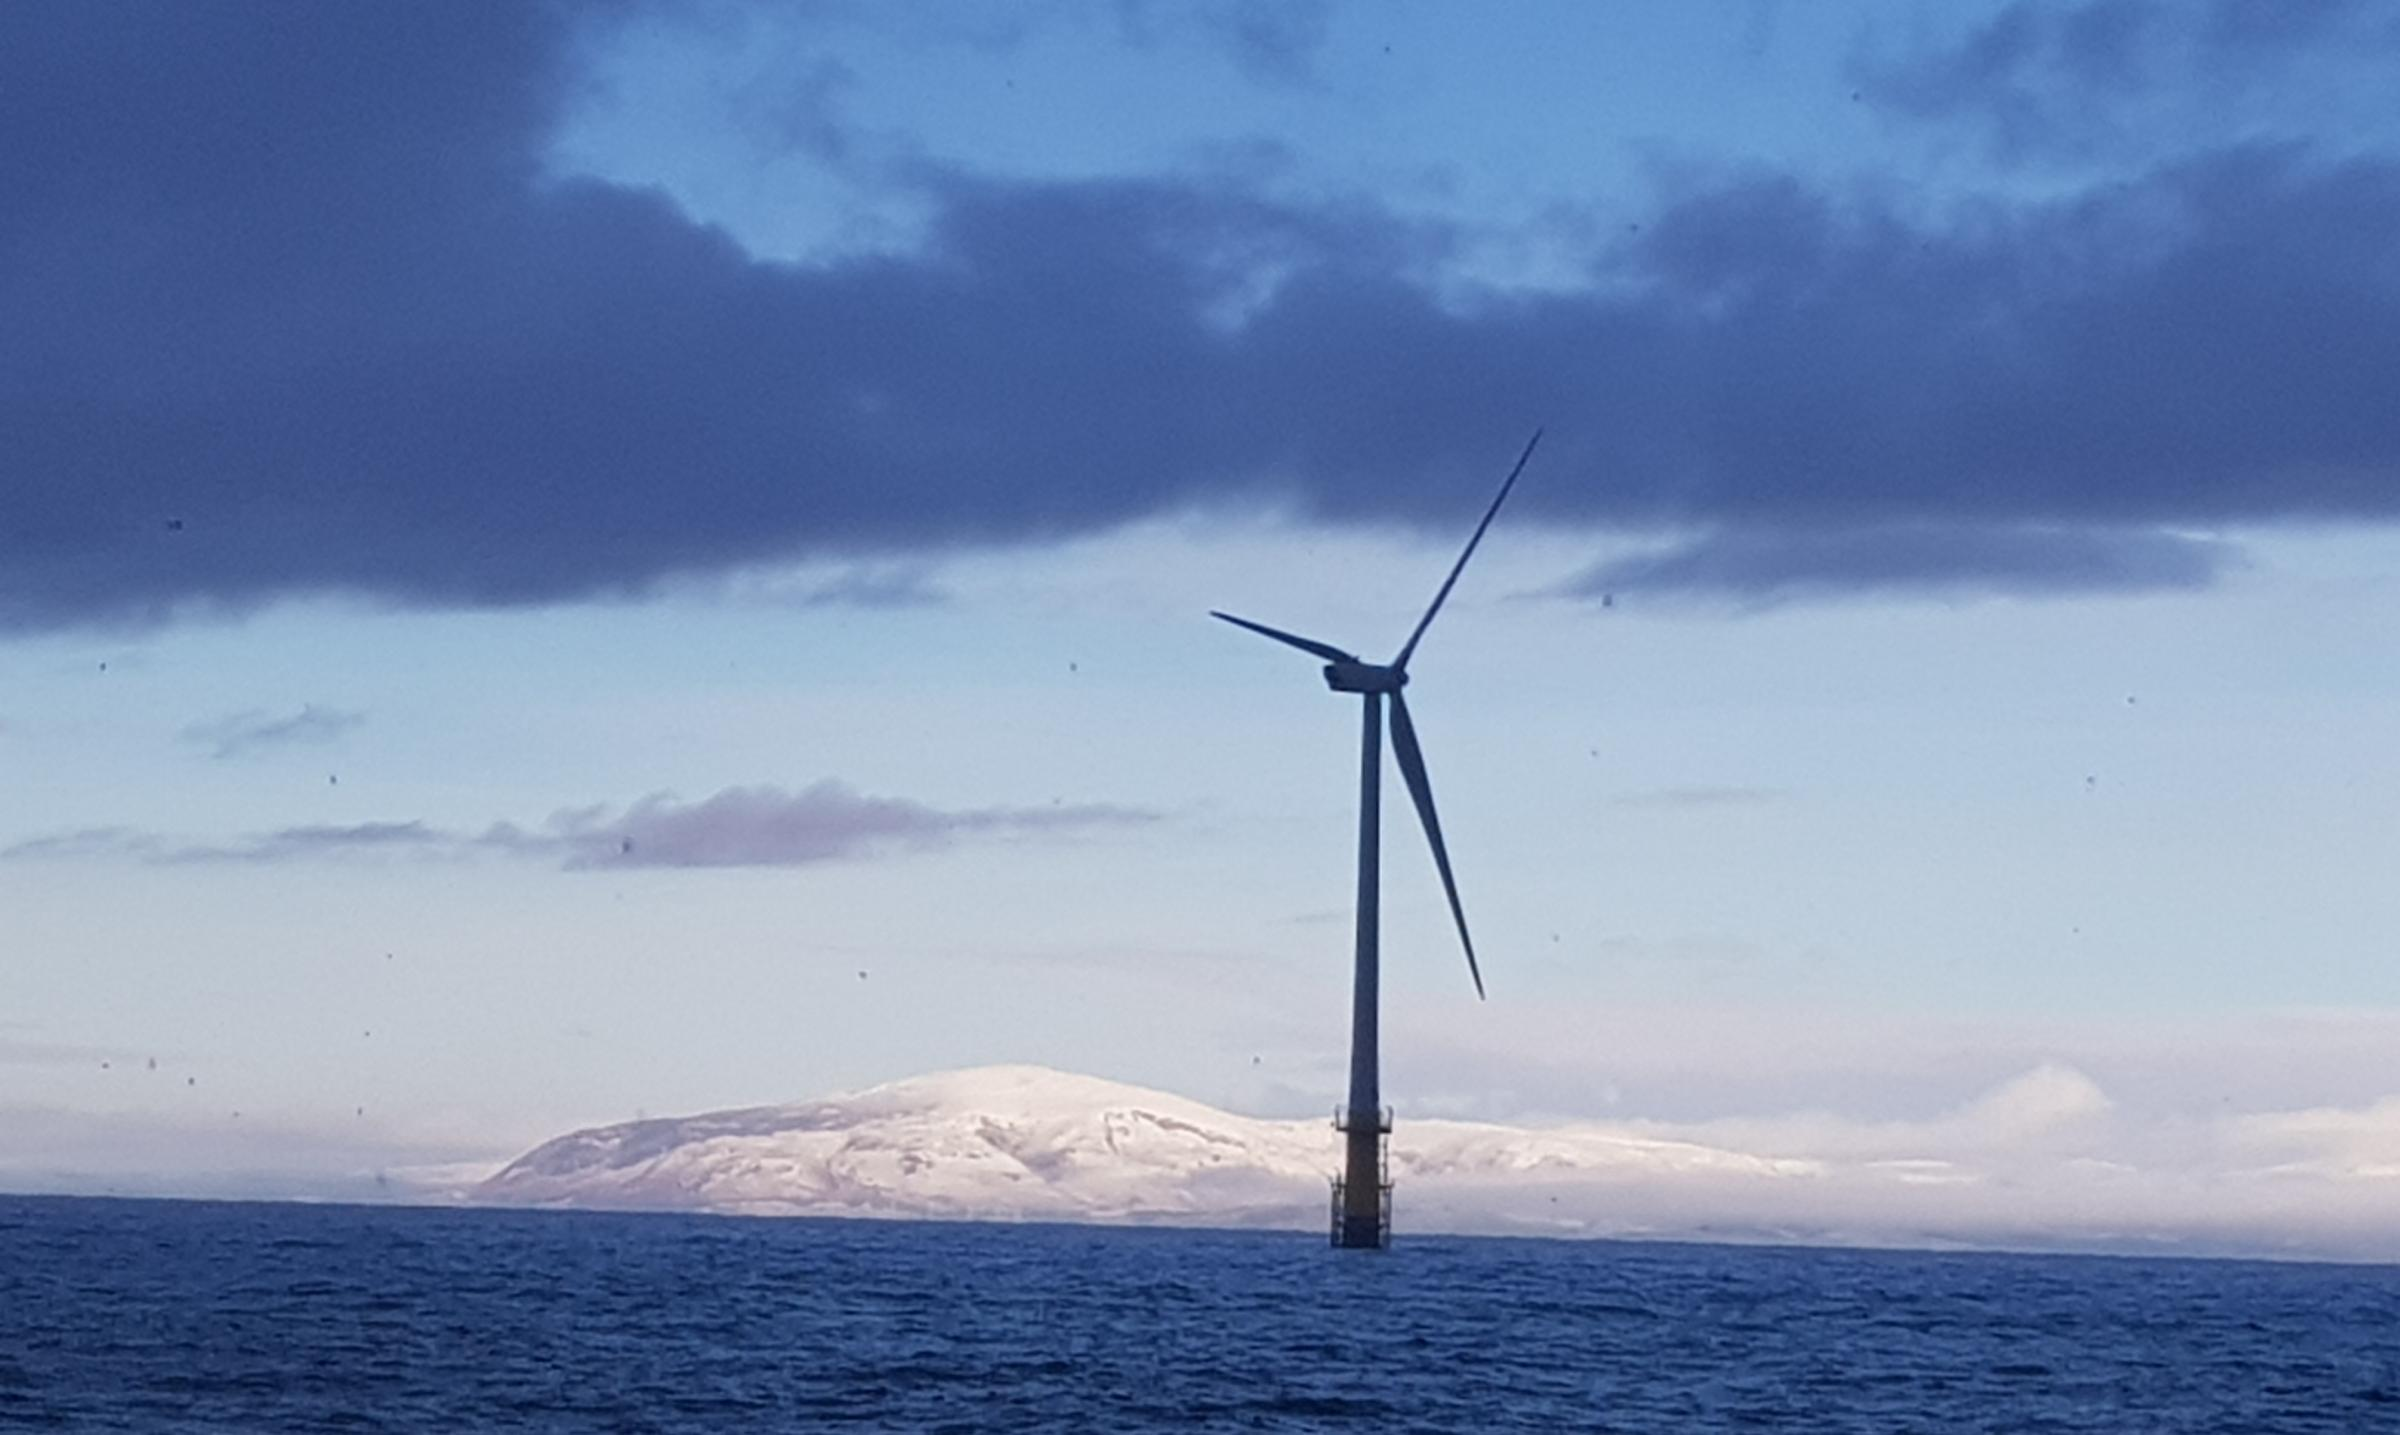 It comes after key work on the Kincardine floating offshore wind development was won by Navantia